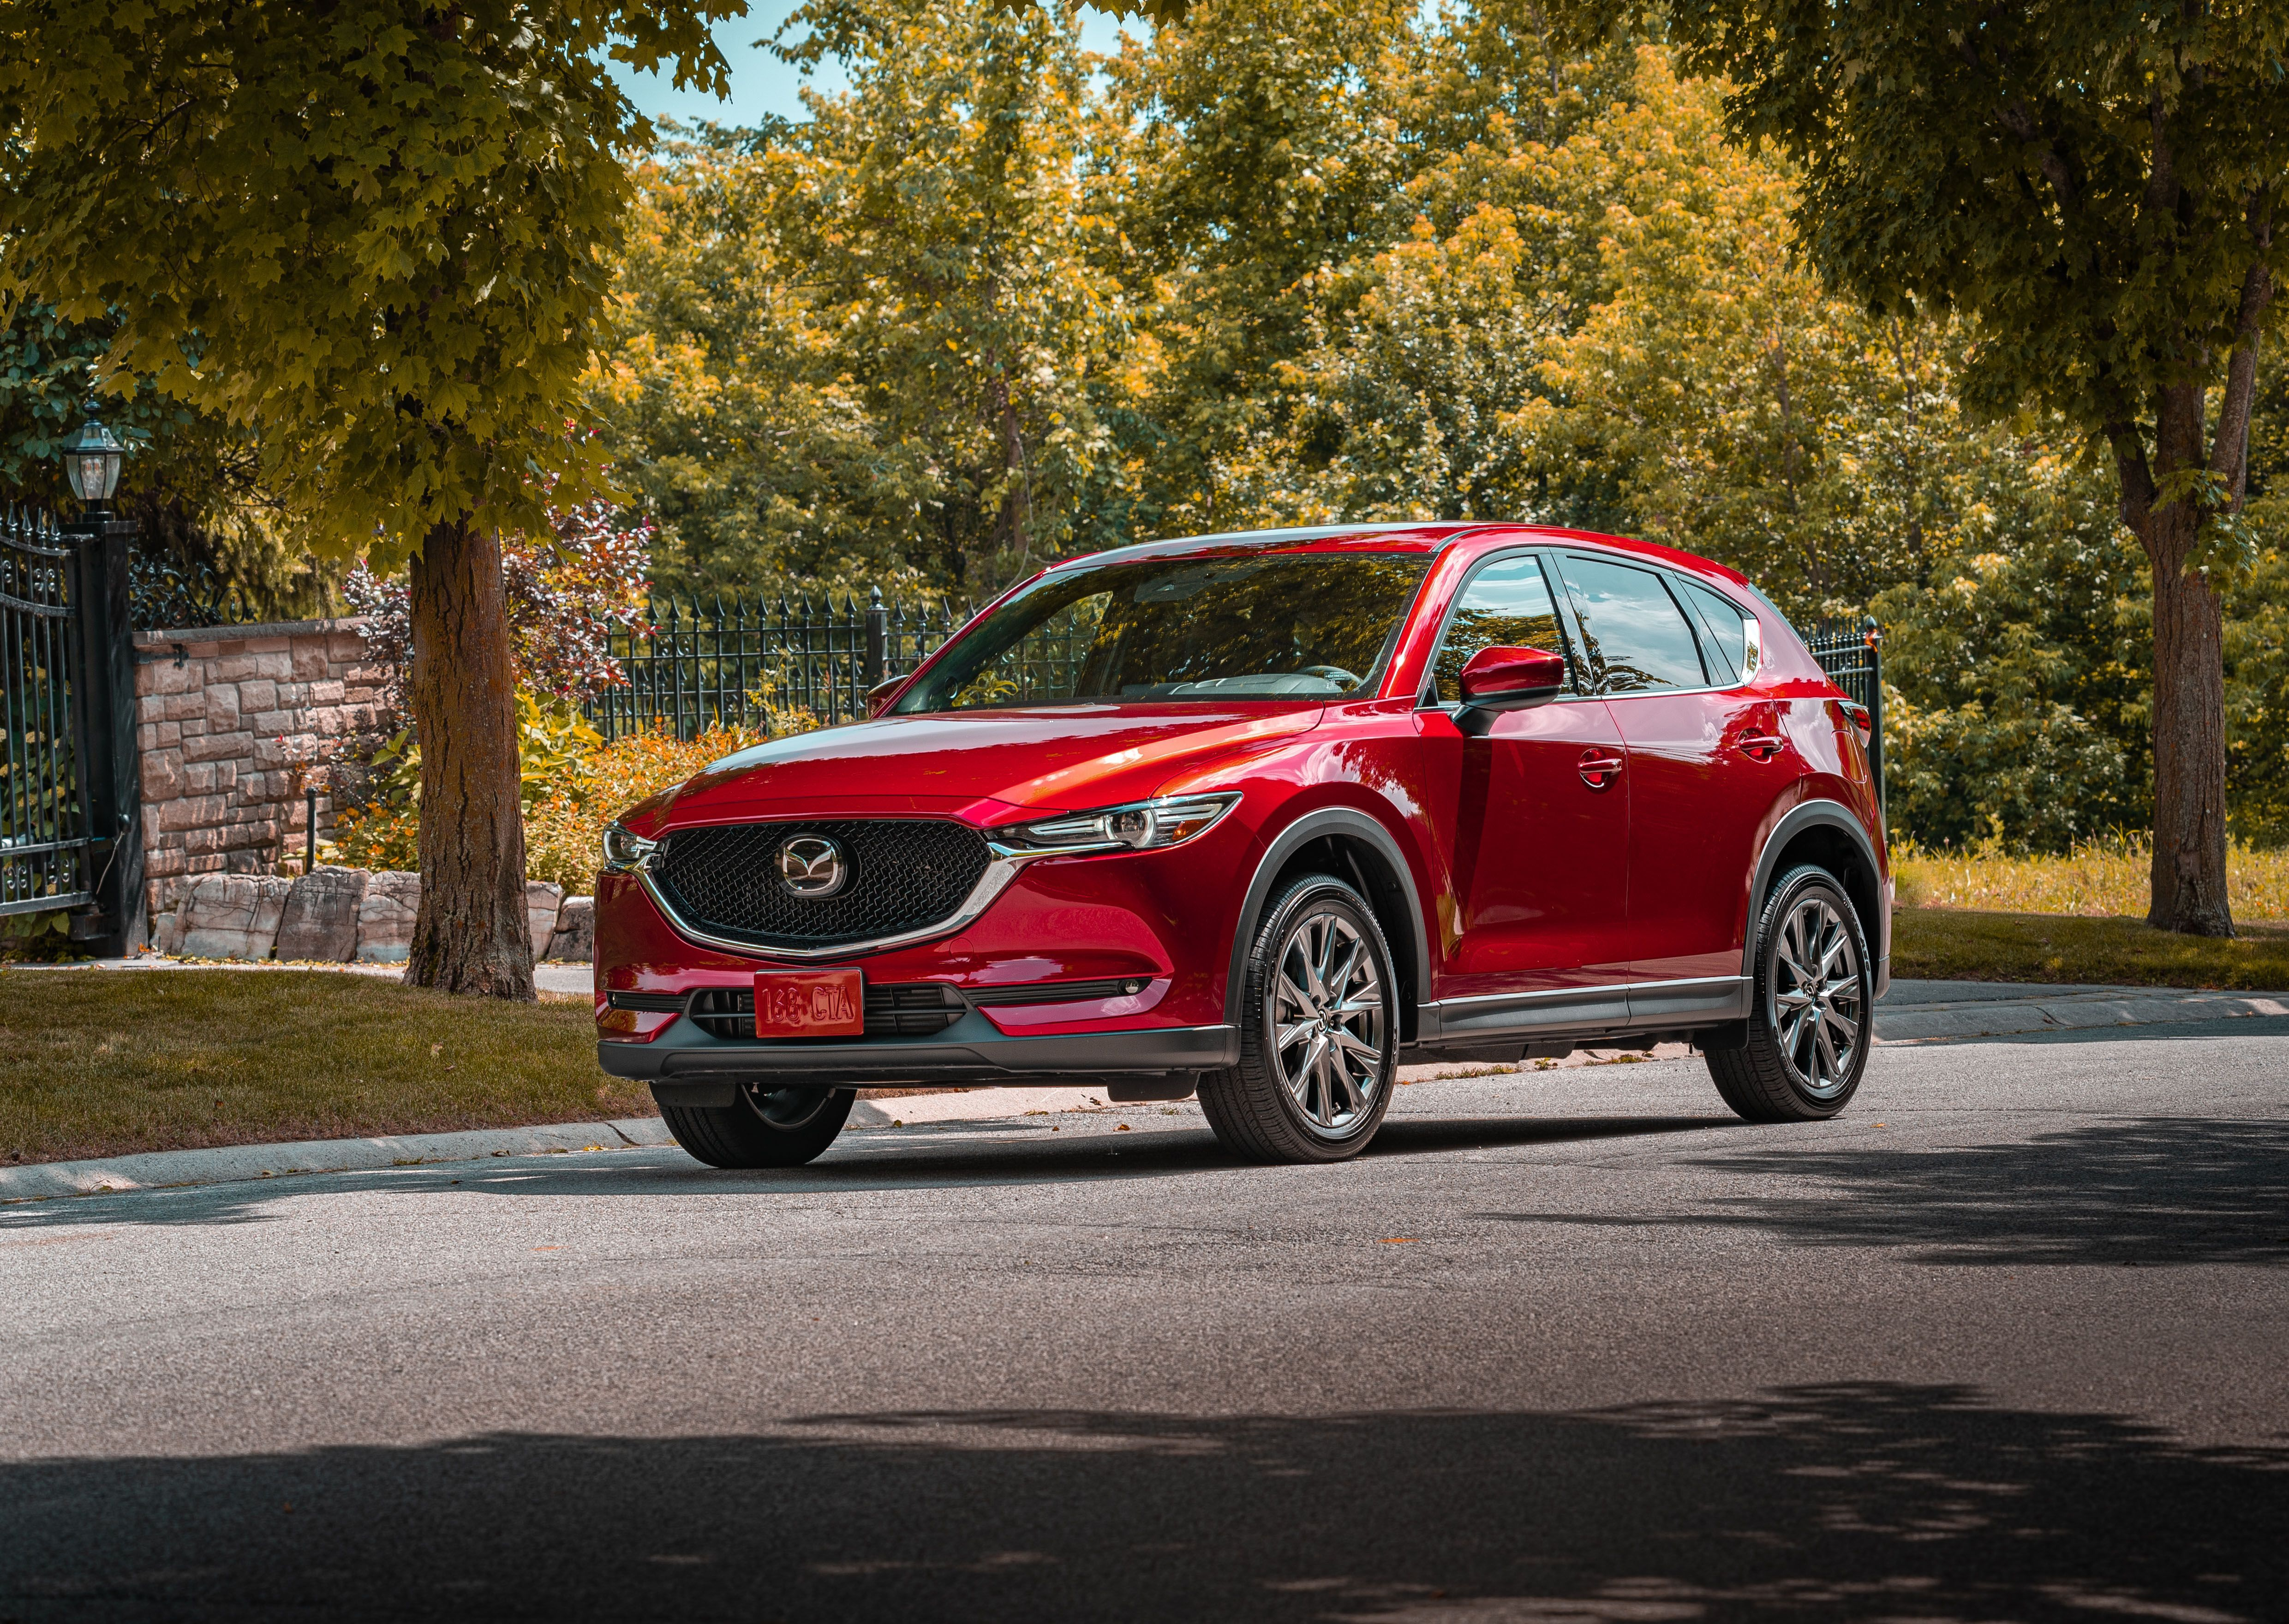 Awesome 2020 Mazda Cx 5 Grand Touring Review And Pics Di 2020